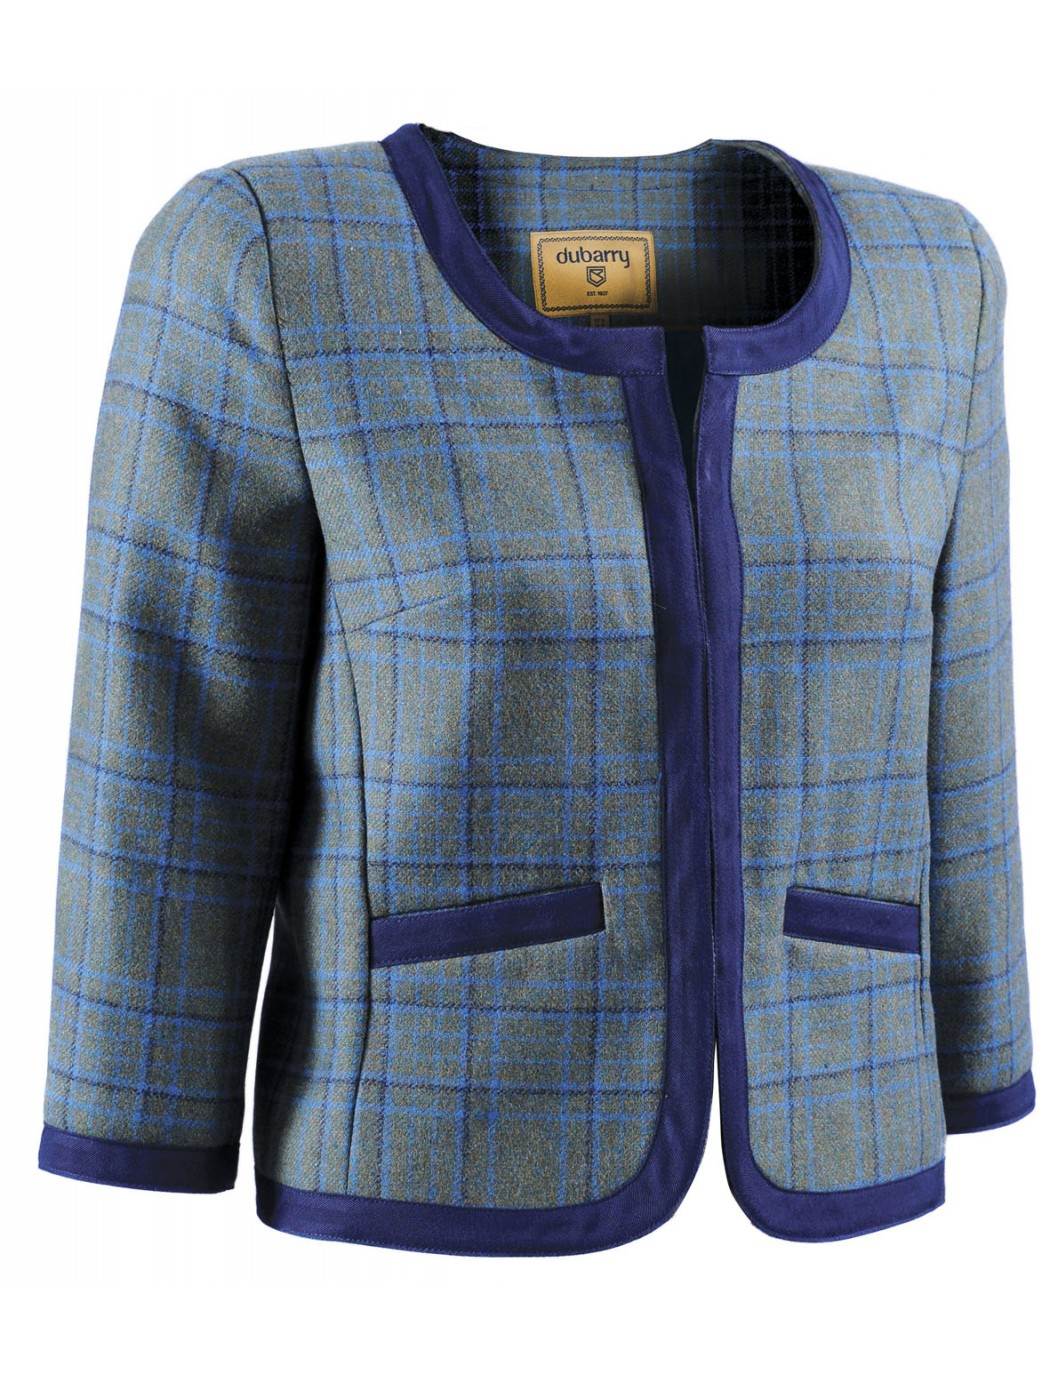 harebell-tweed-jacket-galway-river